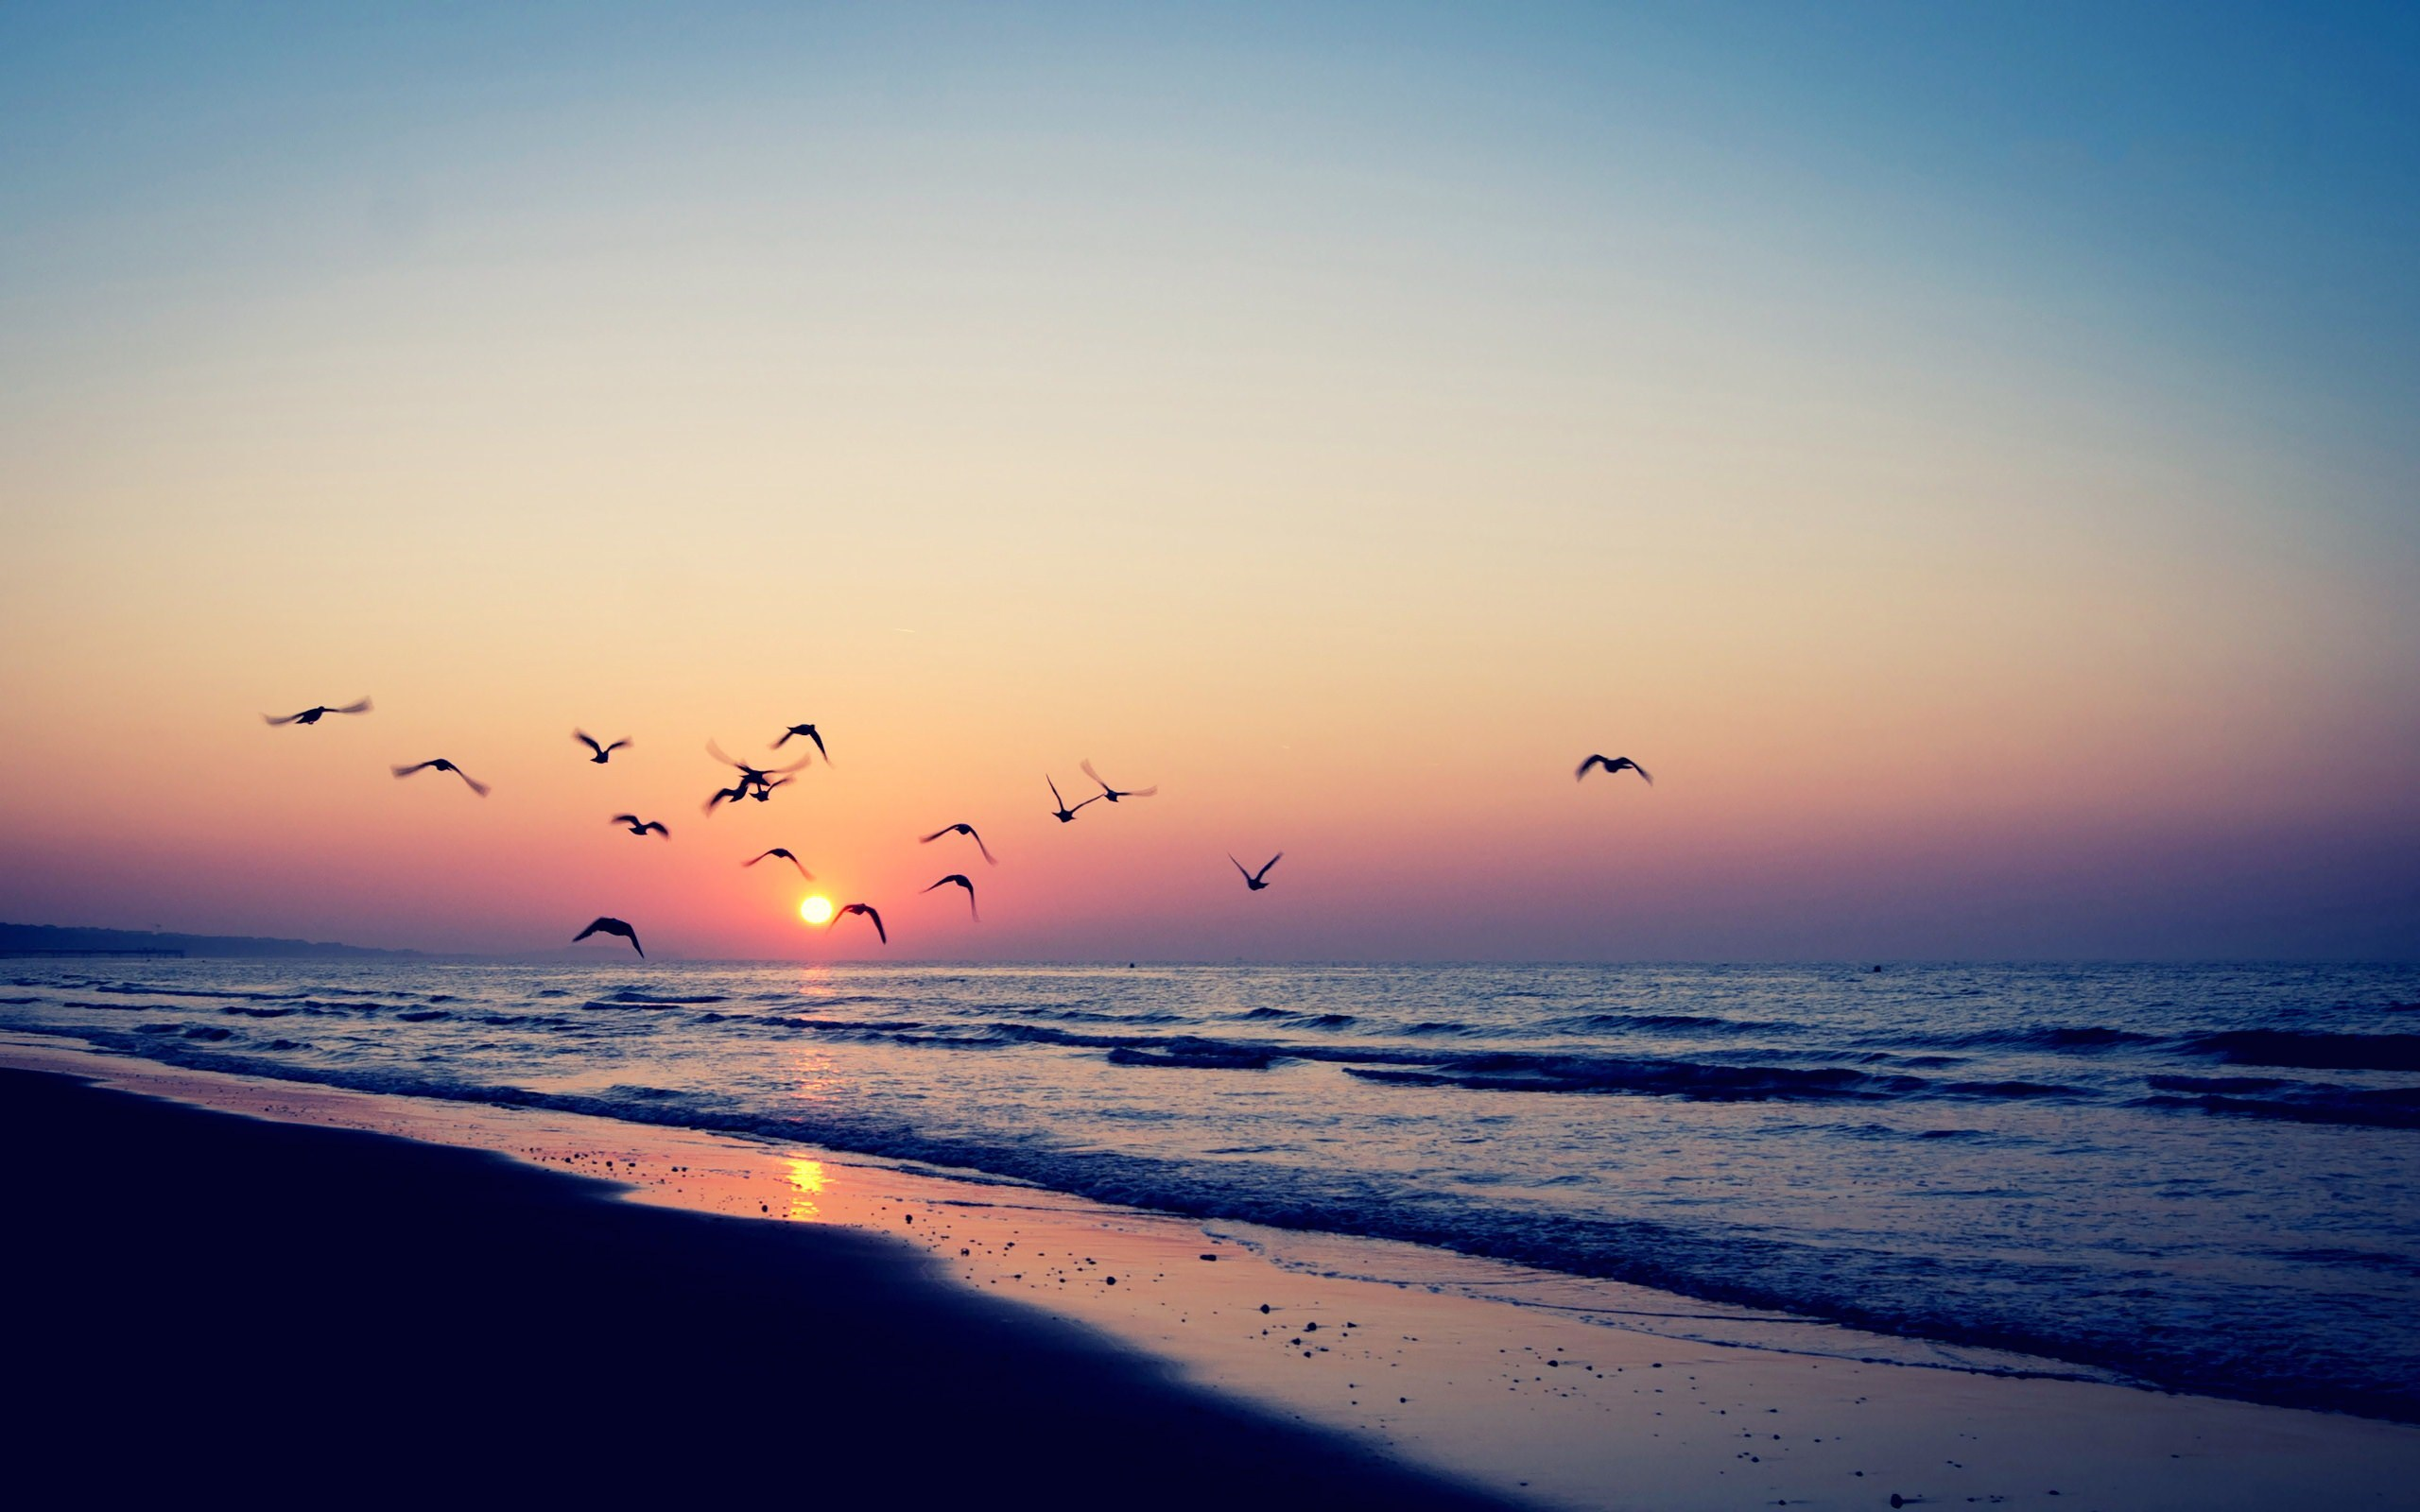 beach-sea-waves-sunset-birds-hd-wallpaper